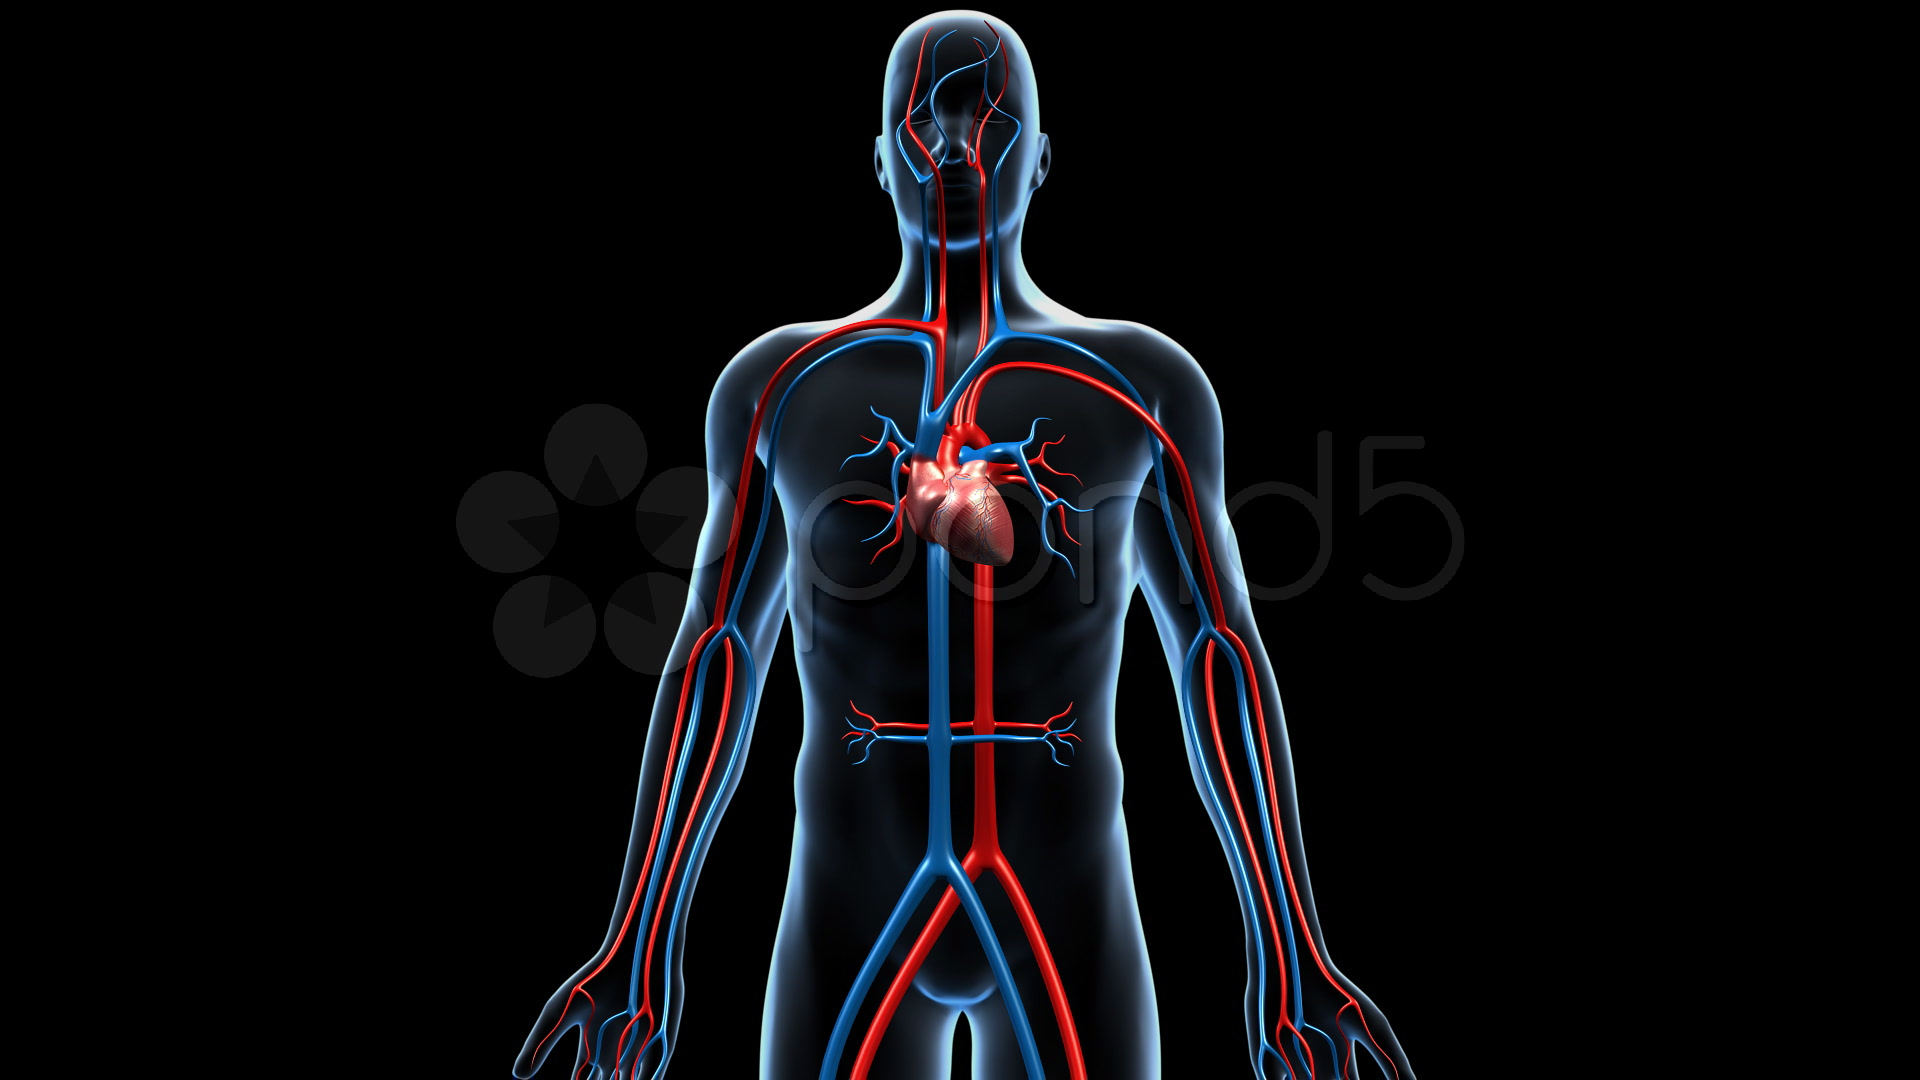 Best 55 Cardiovascular System Wallpaper on HipWallpaper 1920x1080